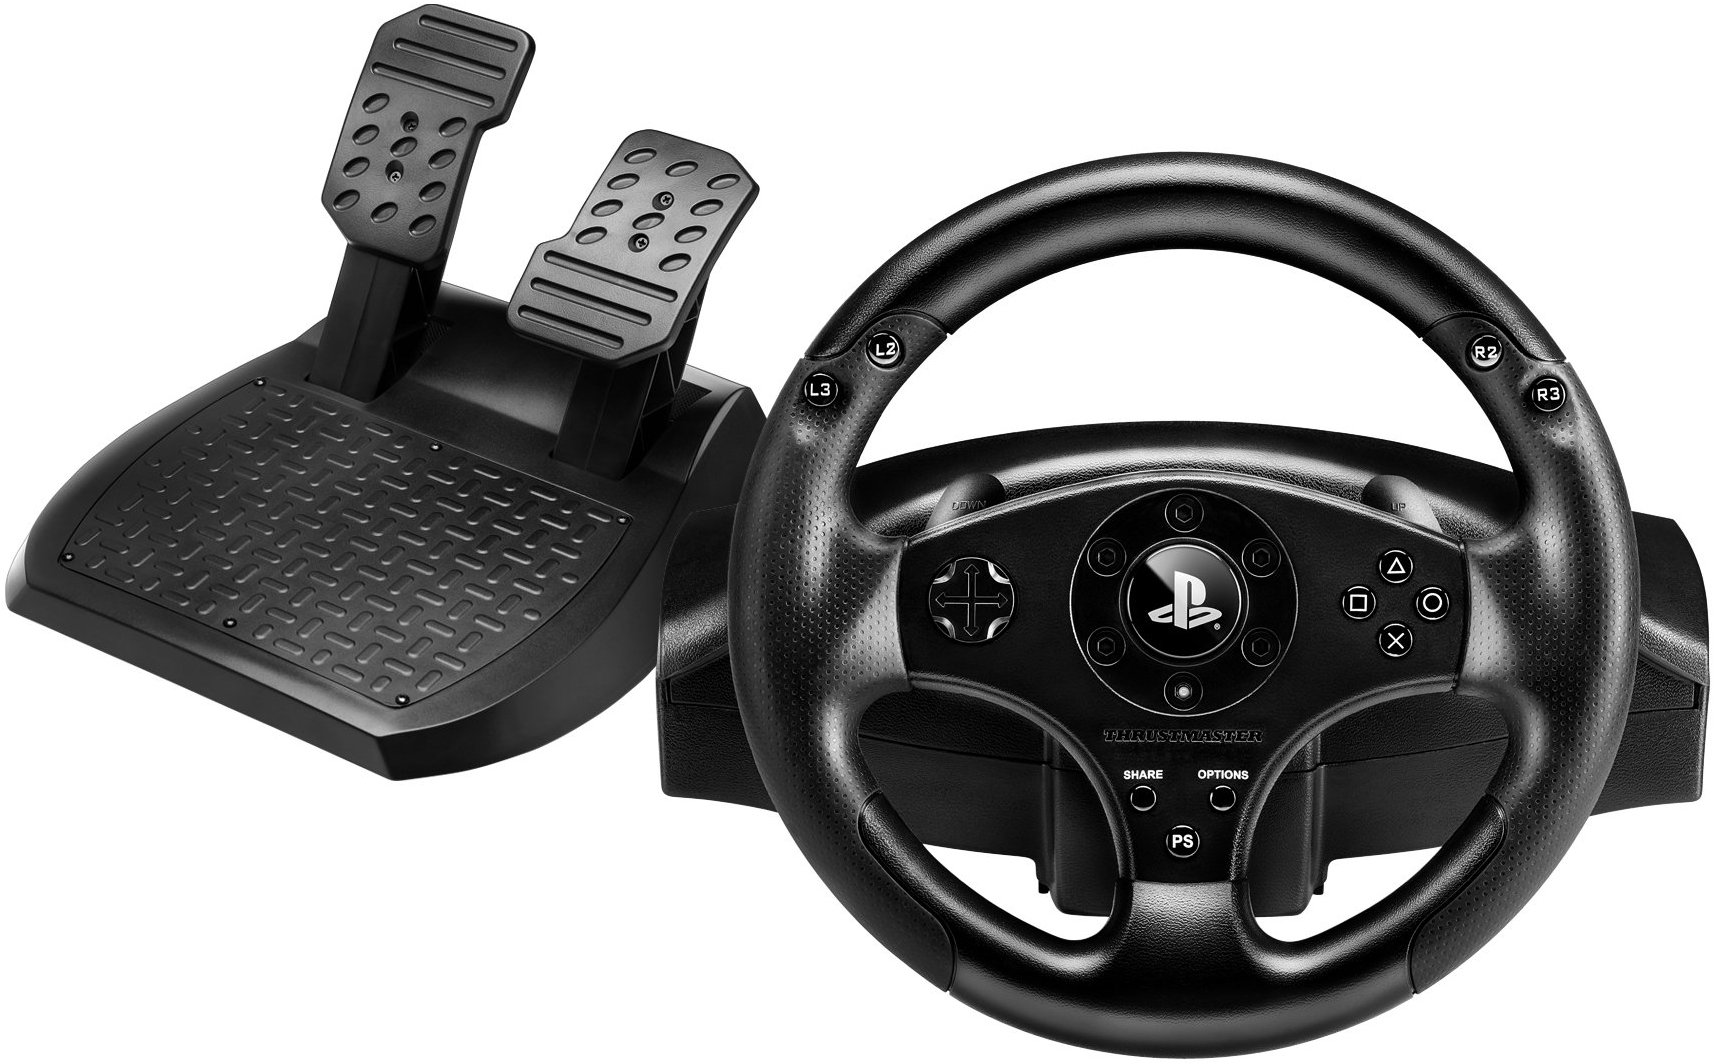 PS3/PS4: THRUSTMASTER T80 RS PS3/PS4 OFFICALLY LICENSED RACING WHEEL (USED)